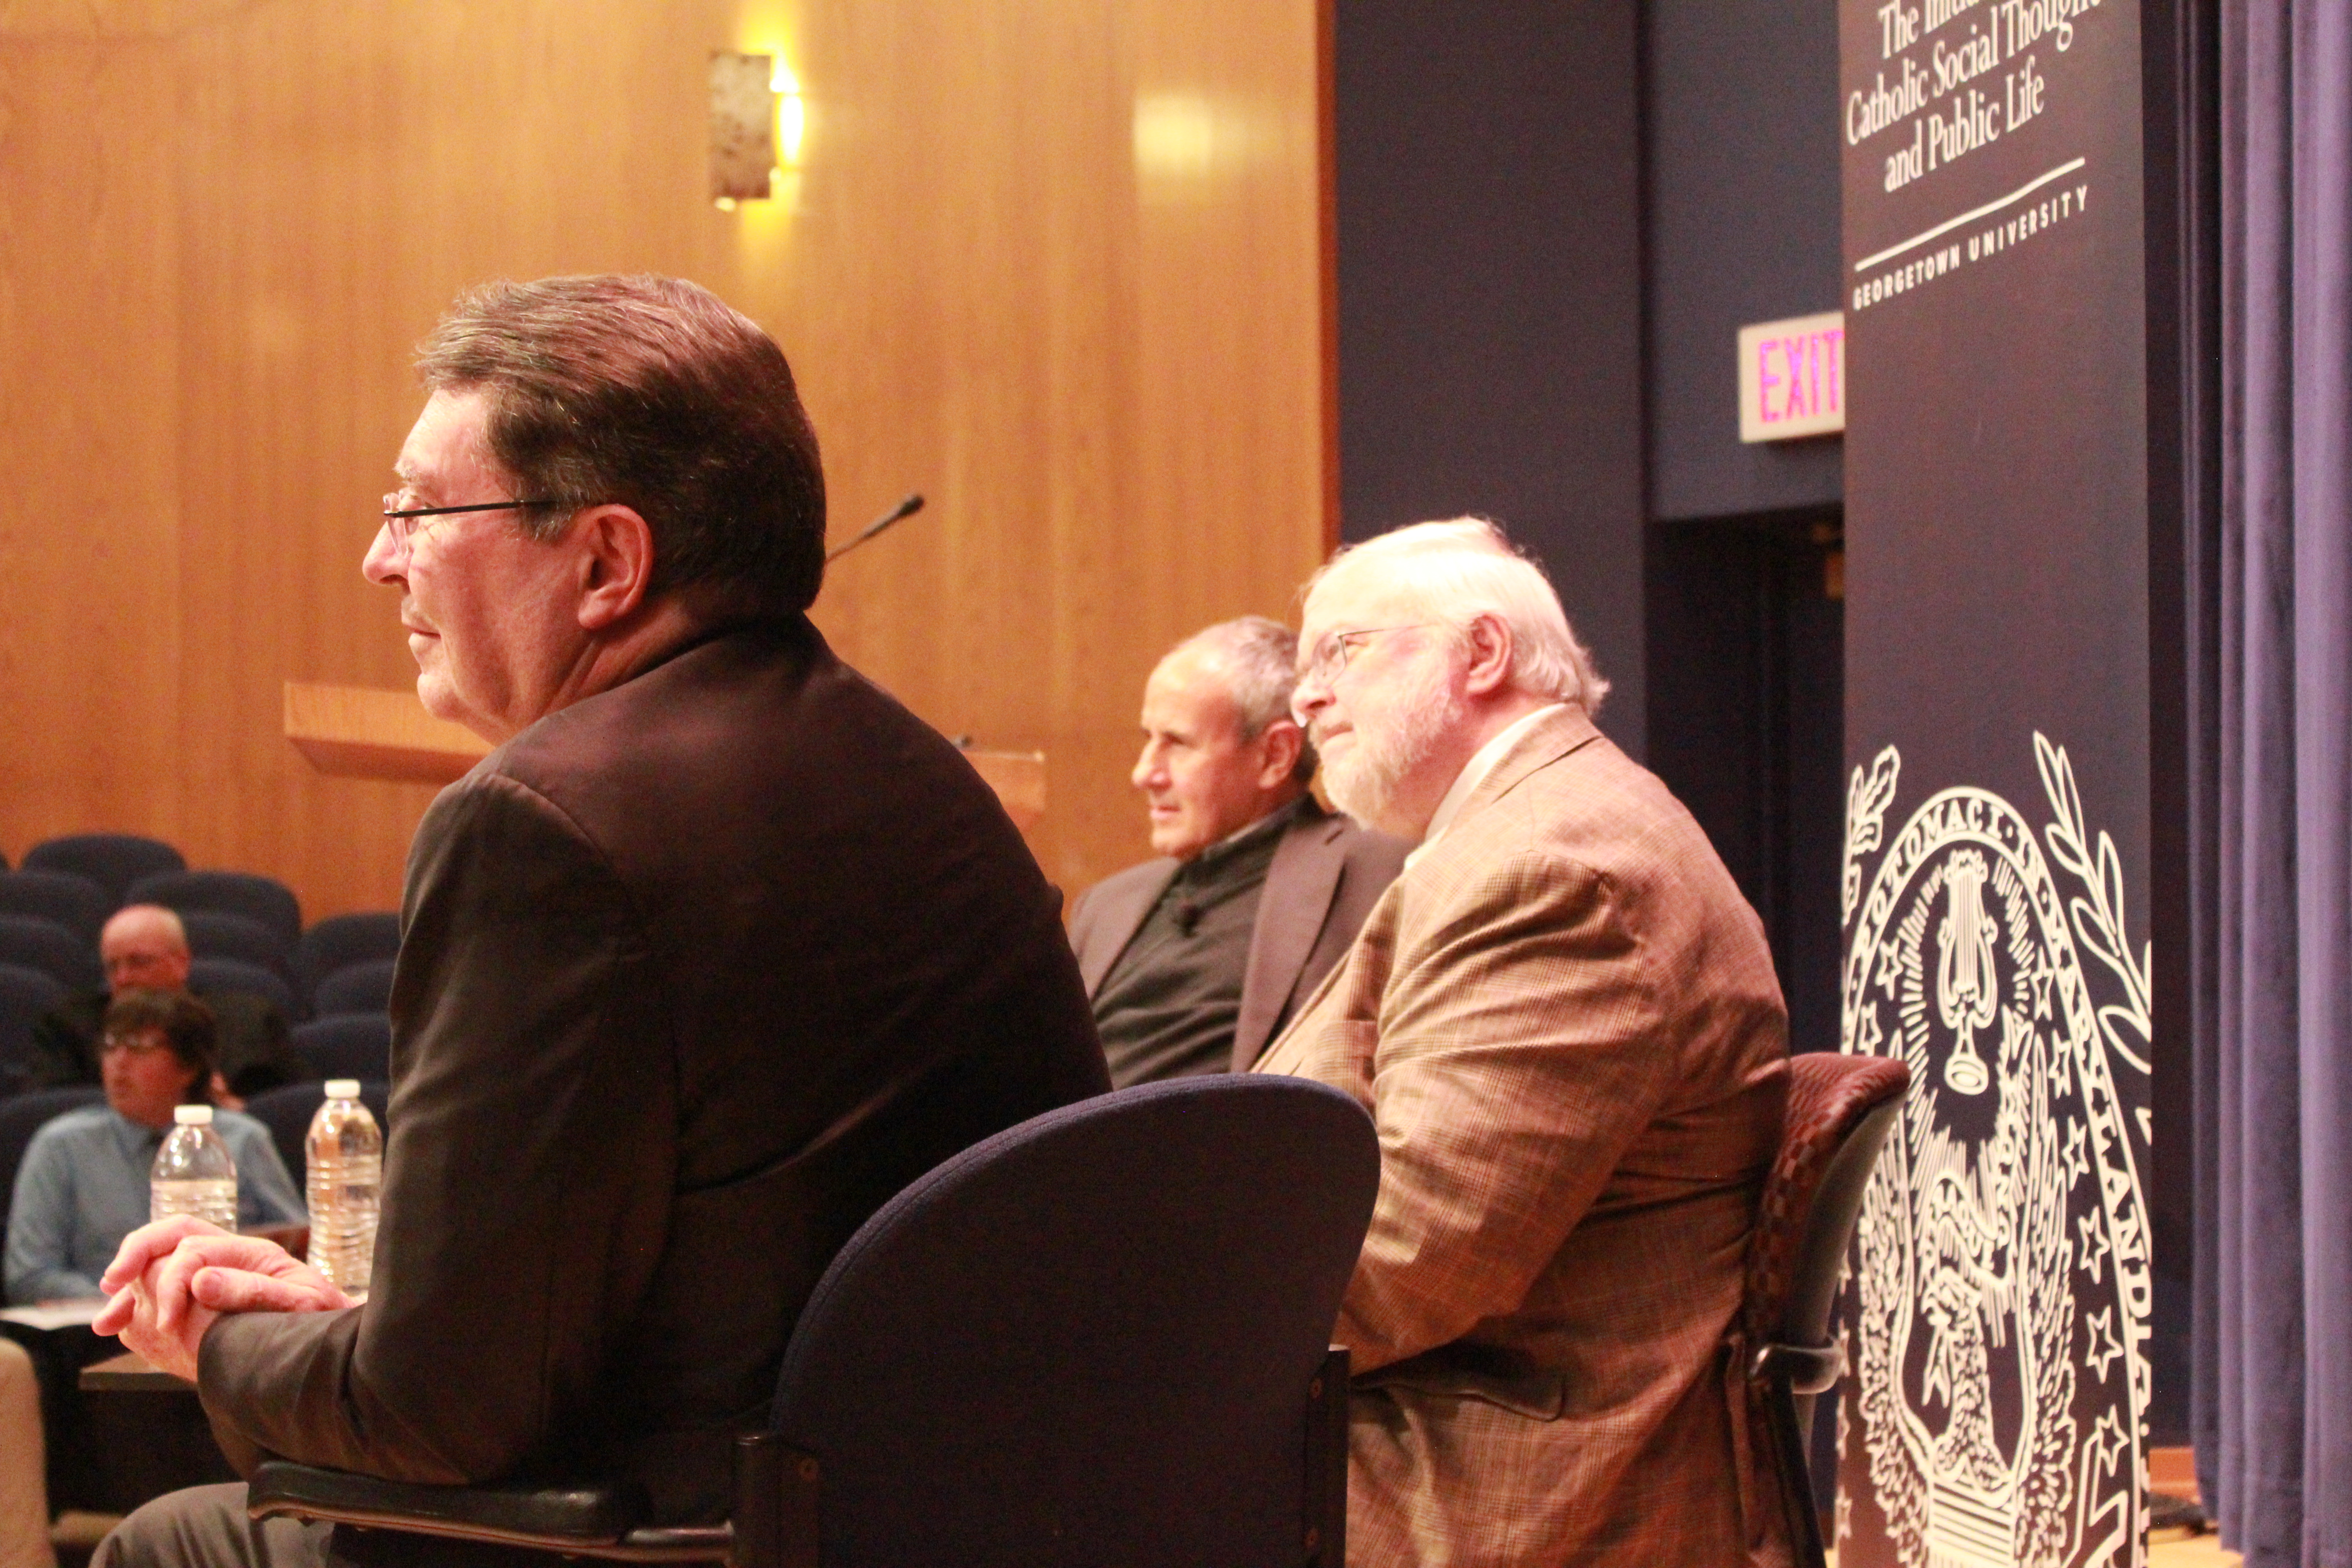 The panel leans in as a member of the audience asks a question exploring the messages of the discussion in more depth.